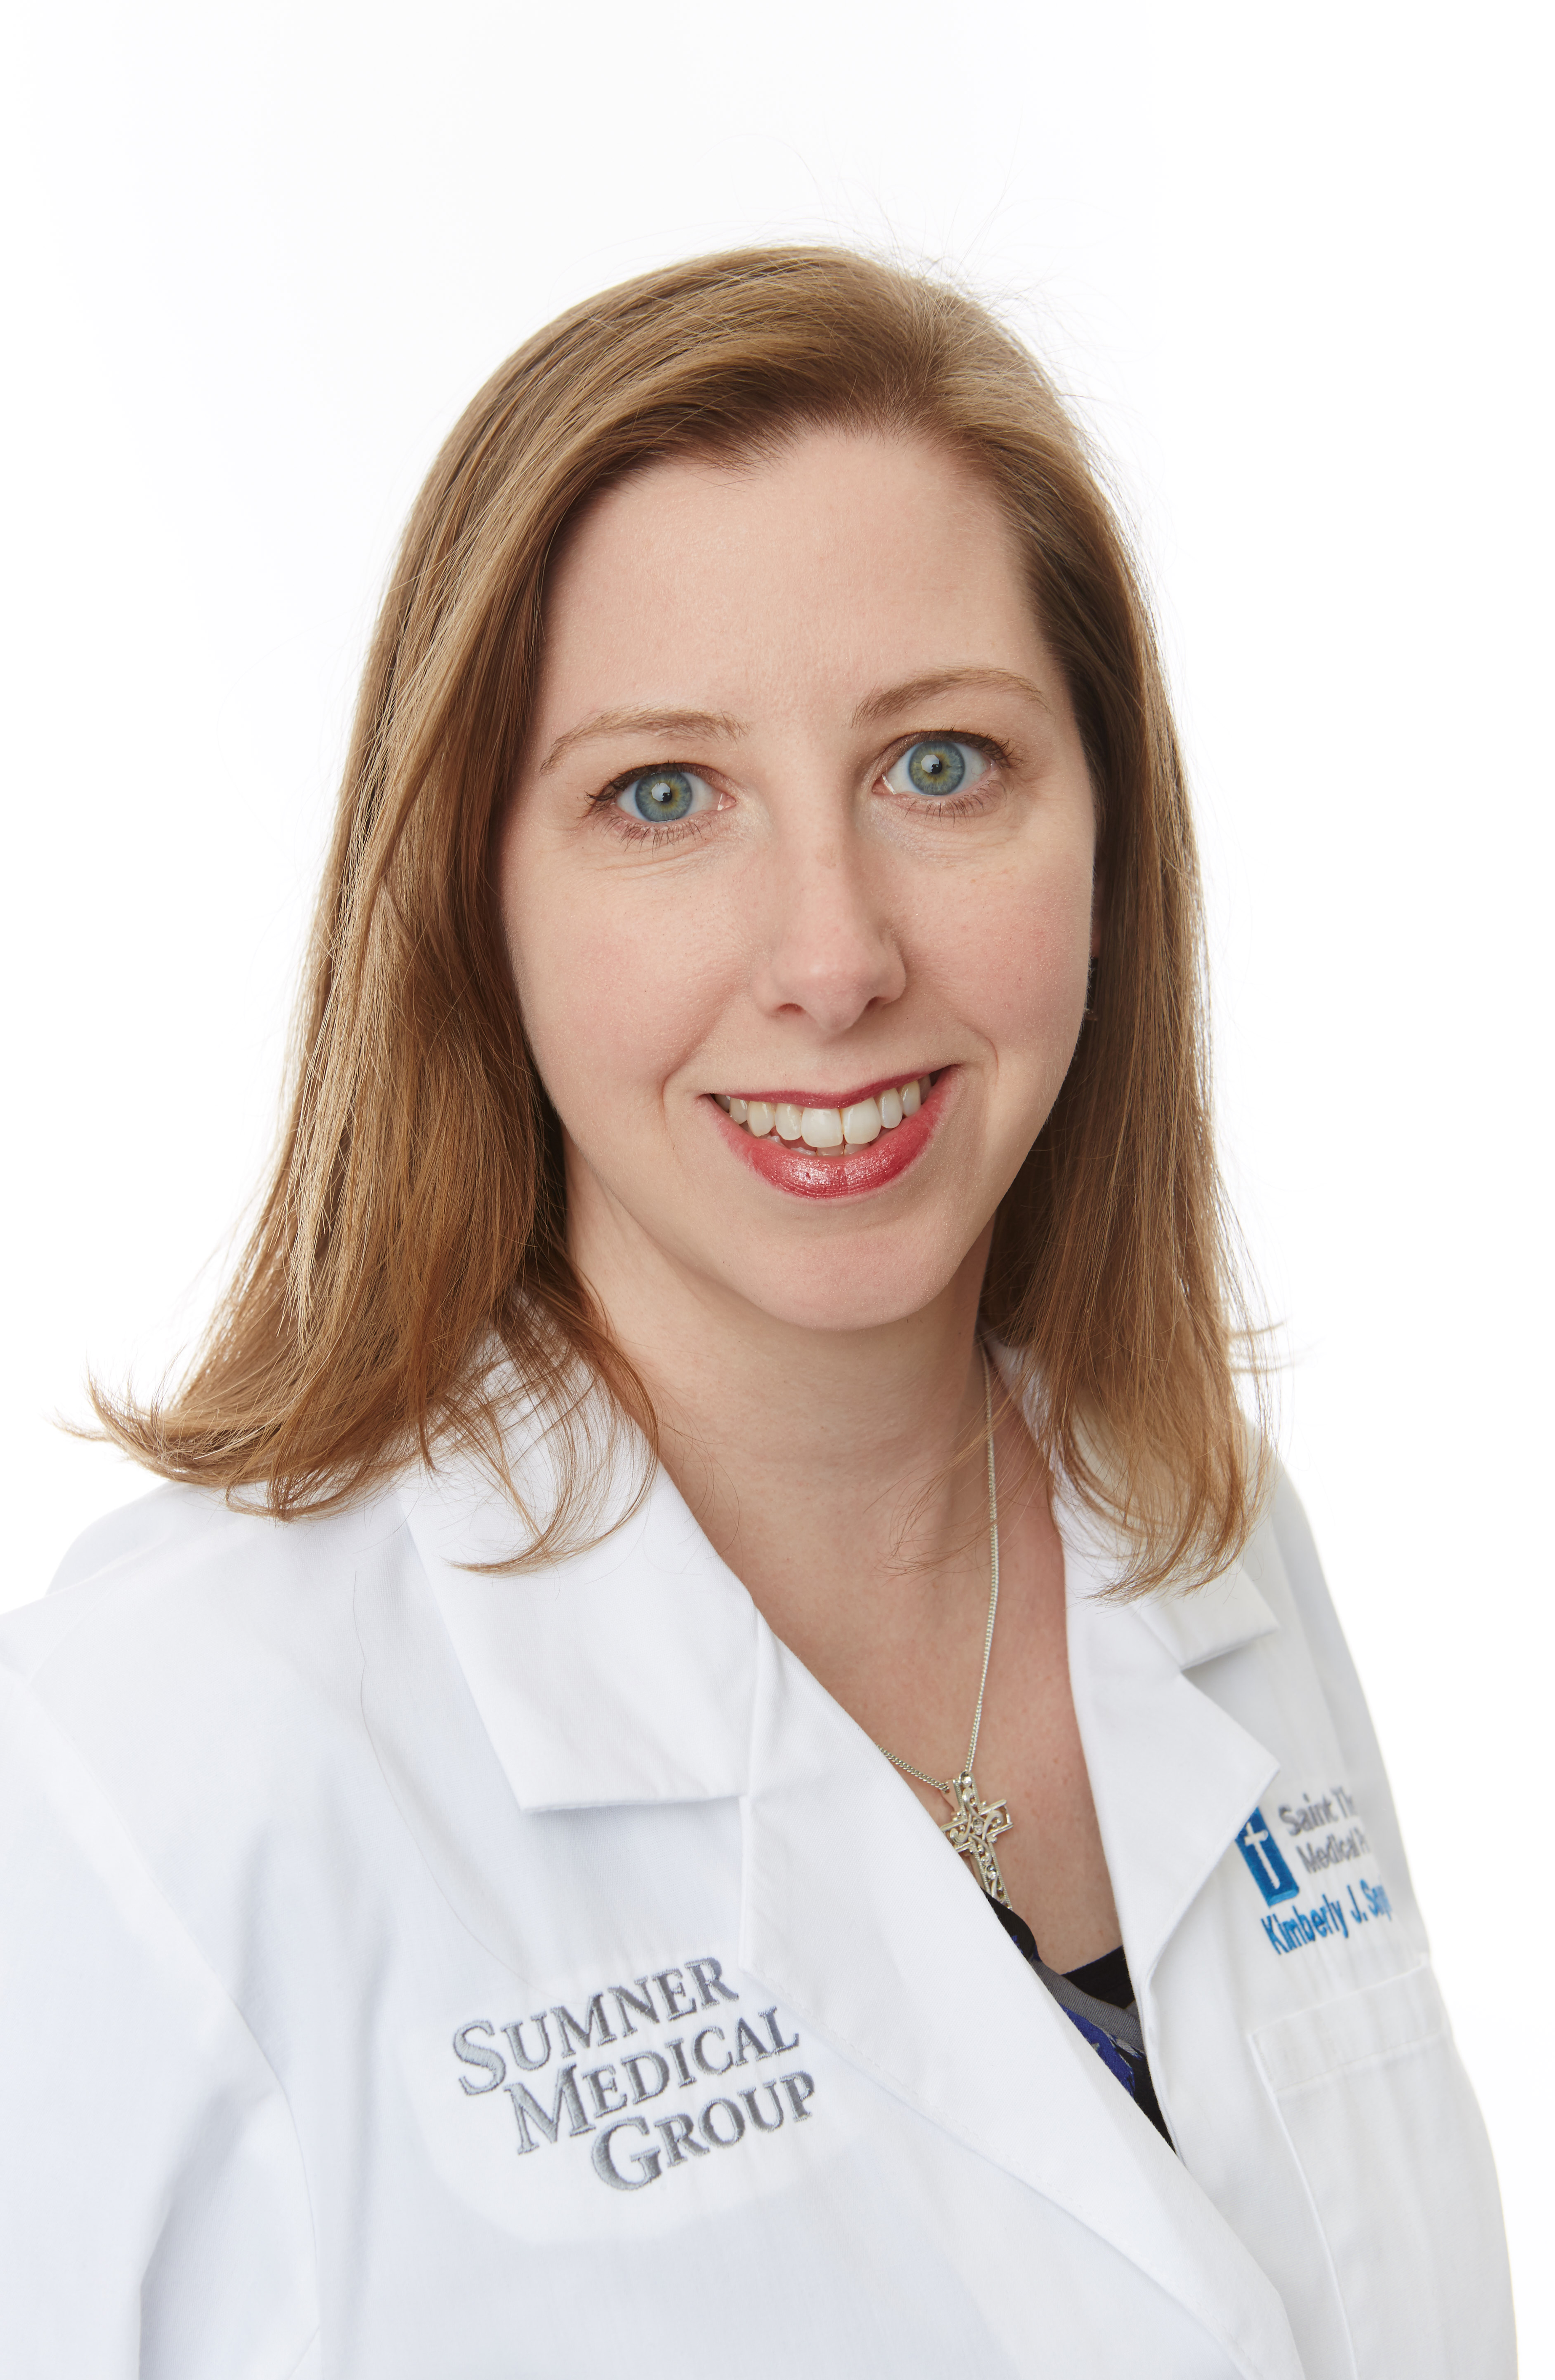 Kimberly Snyder, MD